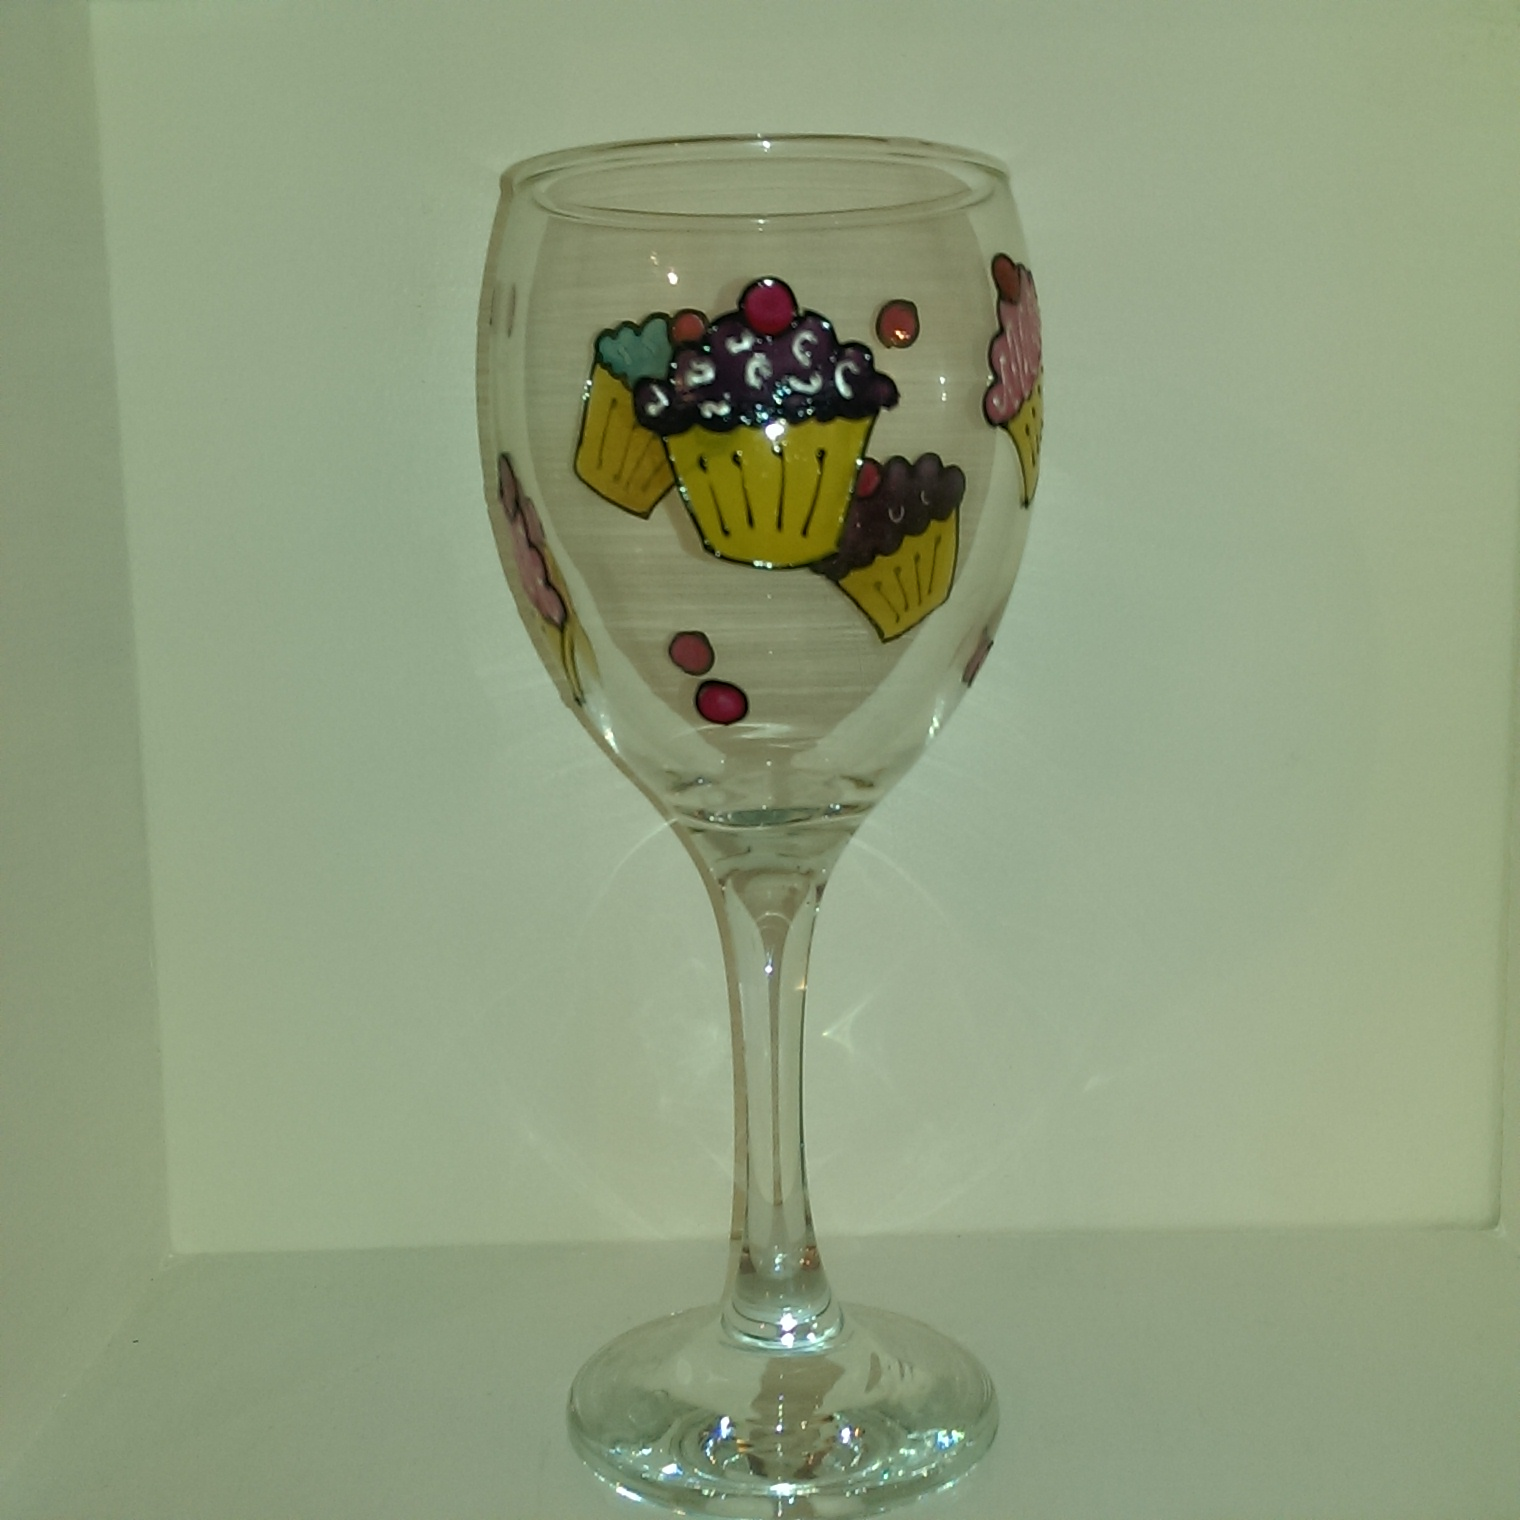 Already Painted Cupcake Wine Glass Unique Glasses